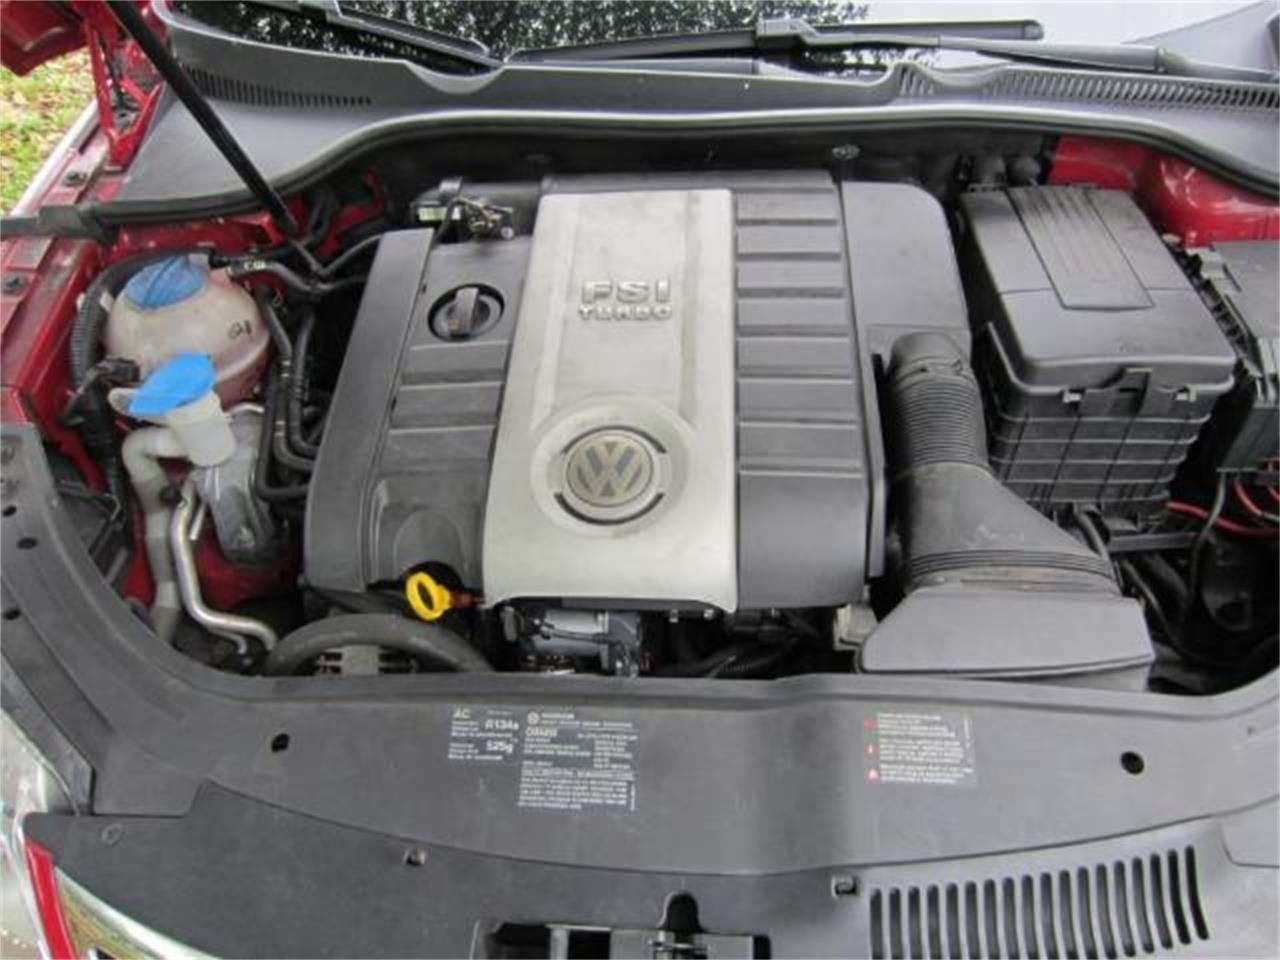 Large Picture of 2008 Volkswagen EosTurbo located in Florida - $11,900.00 - L7OI